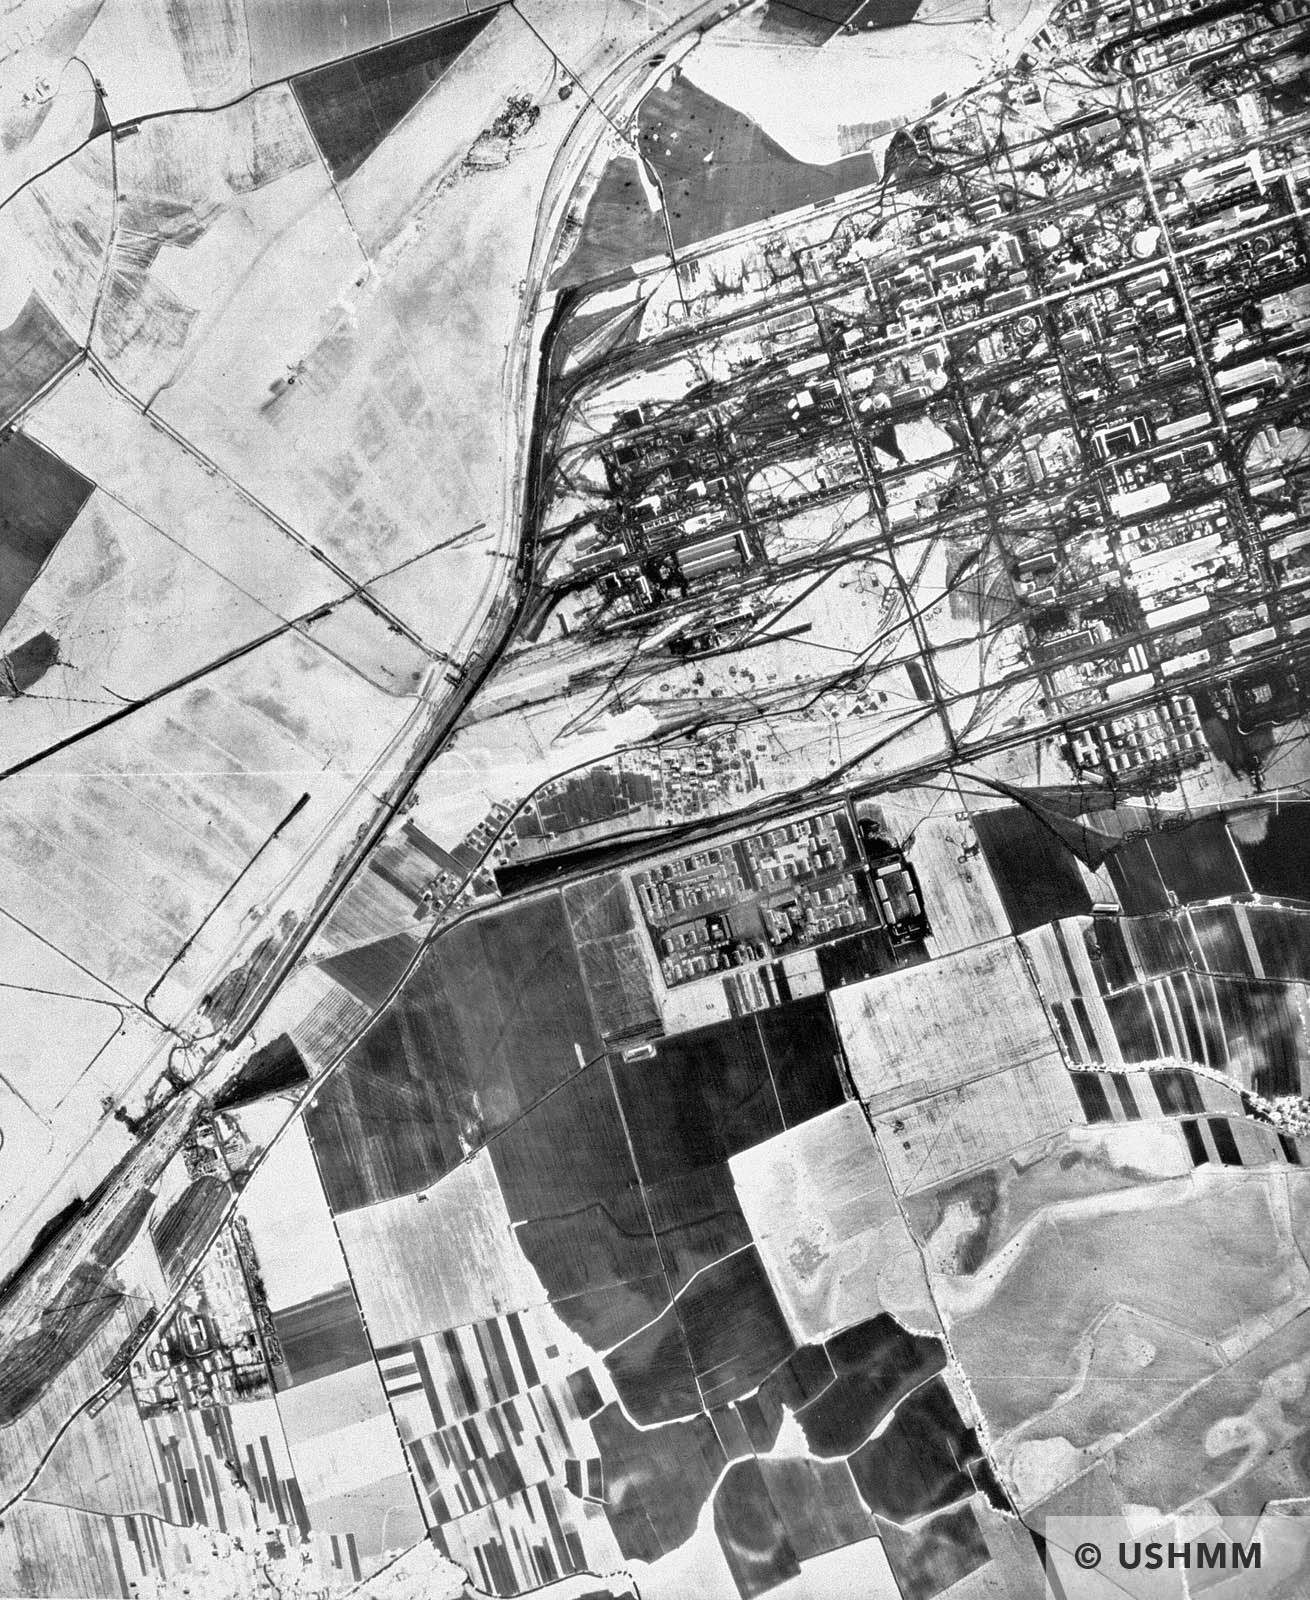 A partial aerial reconnaissance view showing the Buna plant and Auschwitz III prisoner area. 1944 or 1945 USHMM 04302